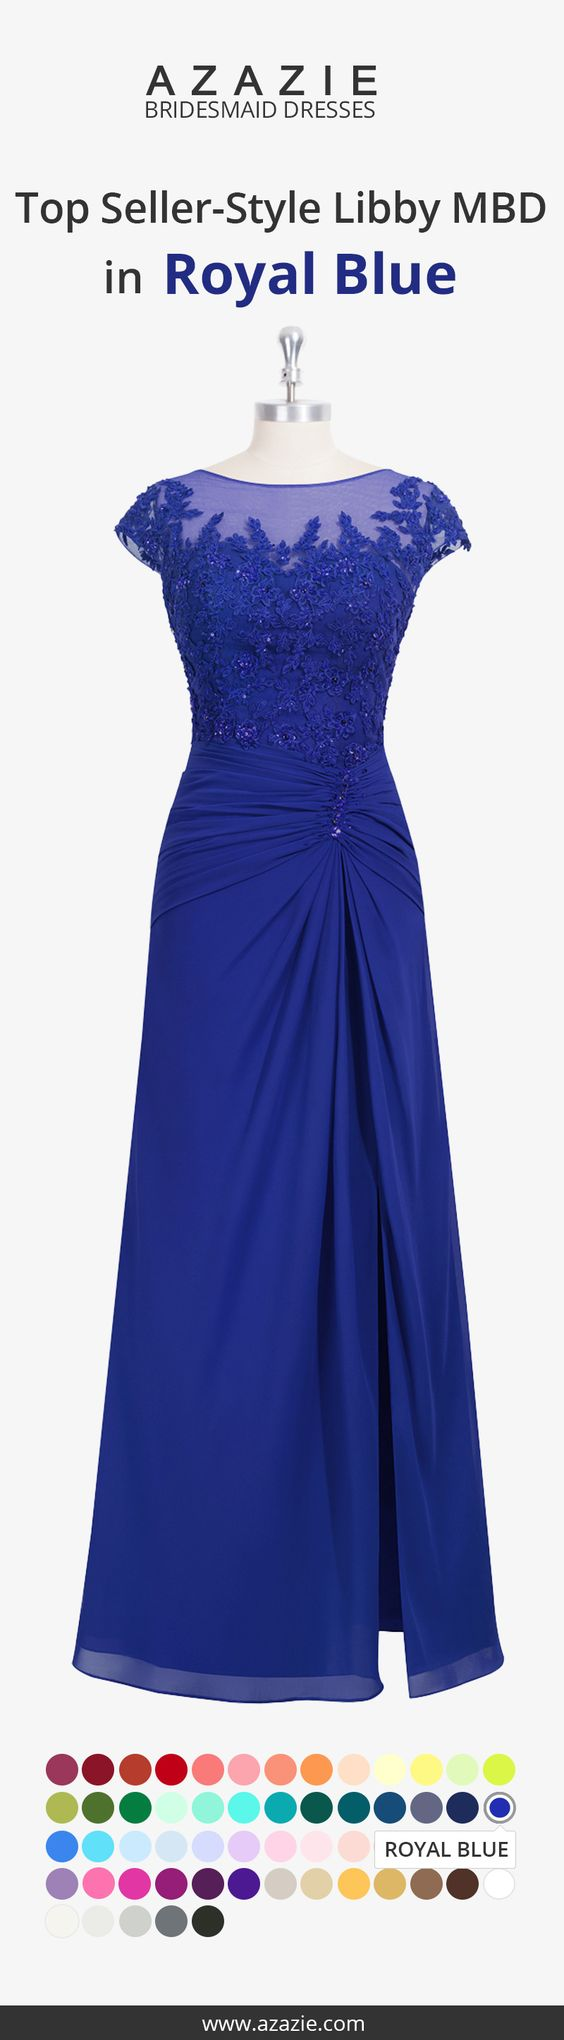 Libby MBD is our floor-length dress in an A-line cut. It features an illusion neckline with sleeves and a lace overlay. It also has a side slit at the front of a shirred skirt with decorative applique on the bodice. Available in full size range (A0-A30) and custom sizing.